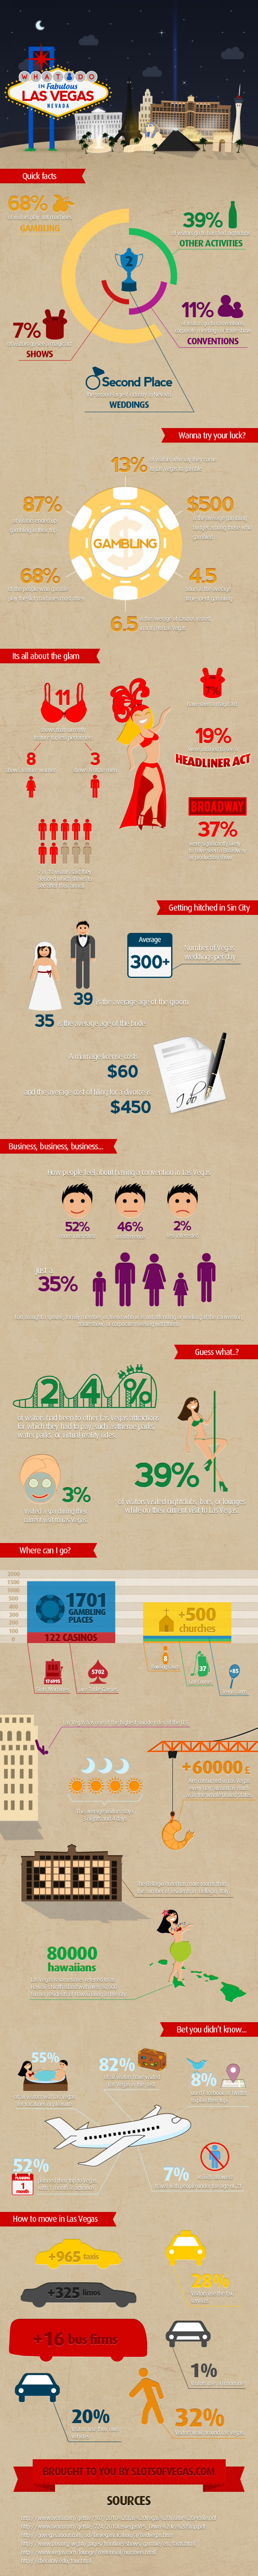 What people do in Las Vegas? Infographic